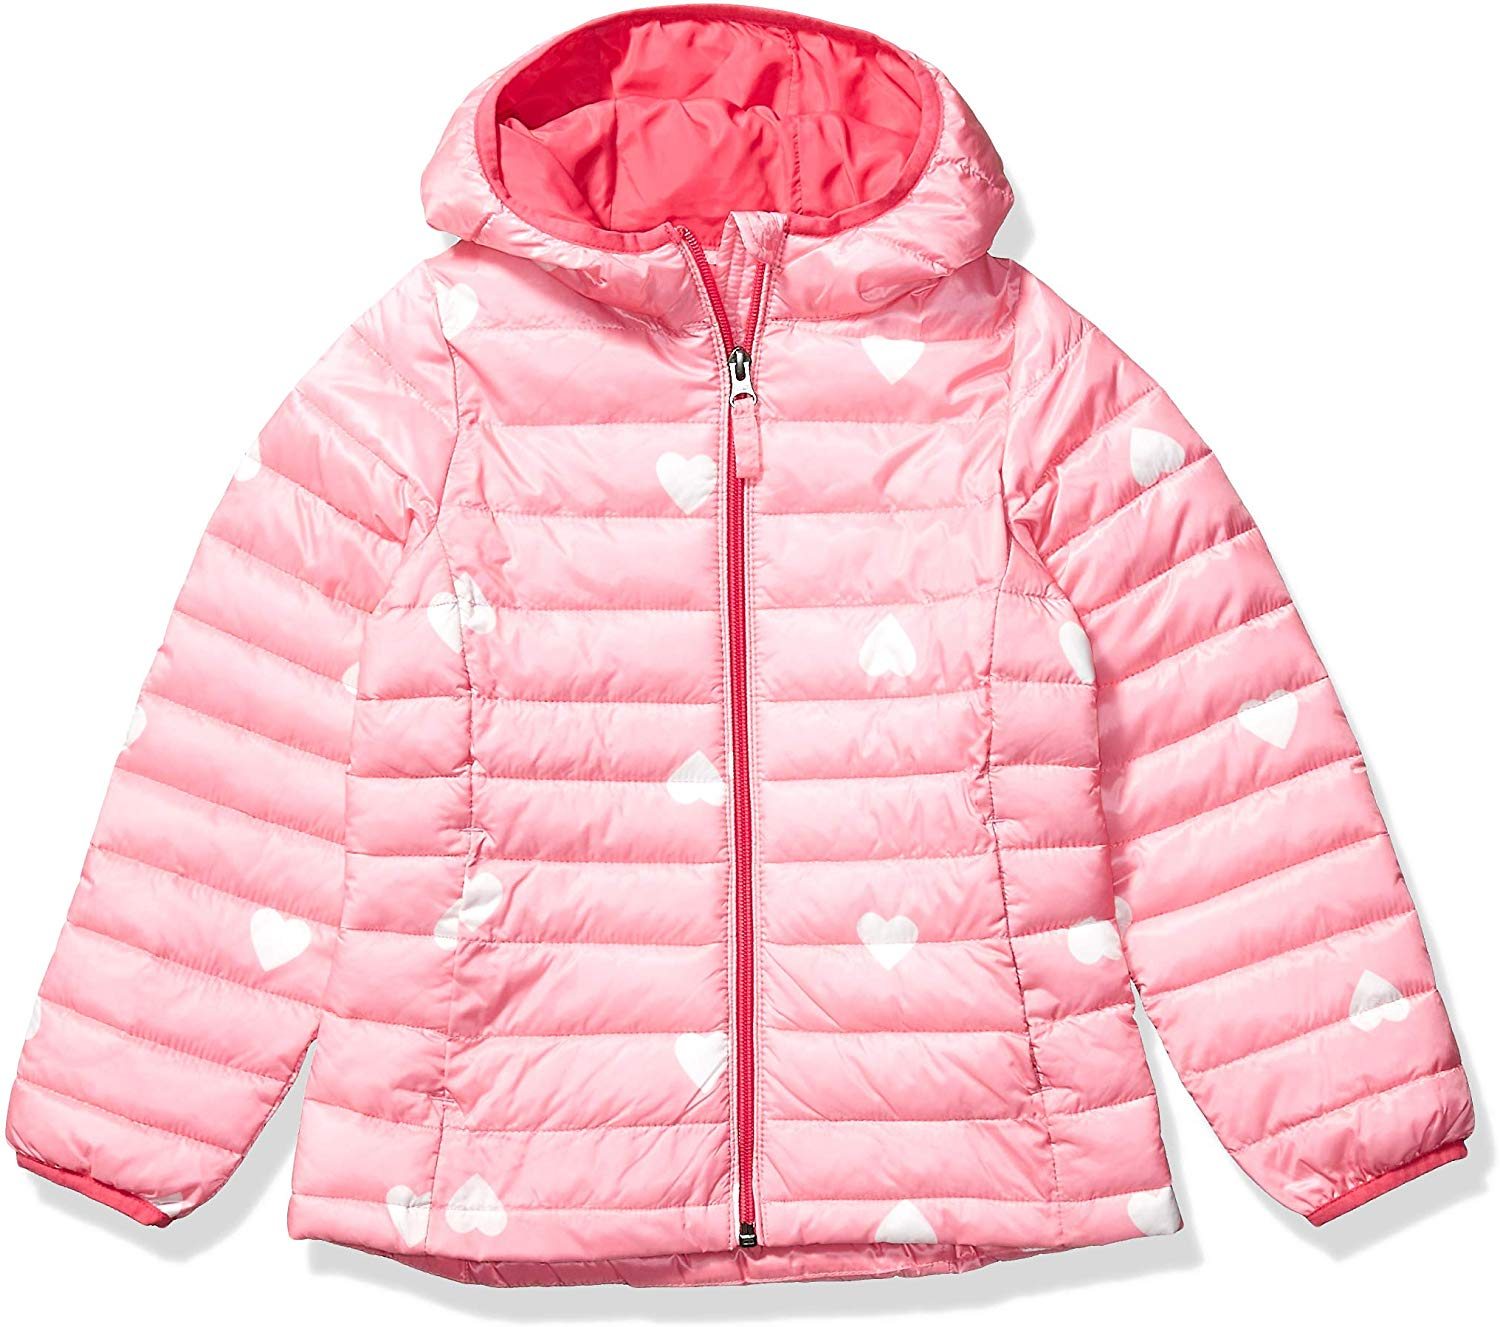 Essentials Girls Lightweight Water-Resistant Packable Hooded Puffer Jacket